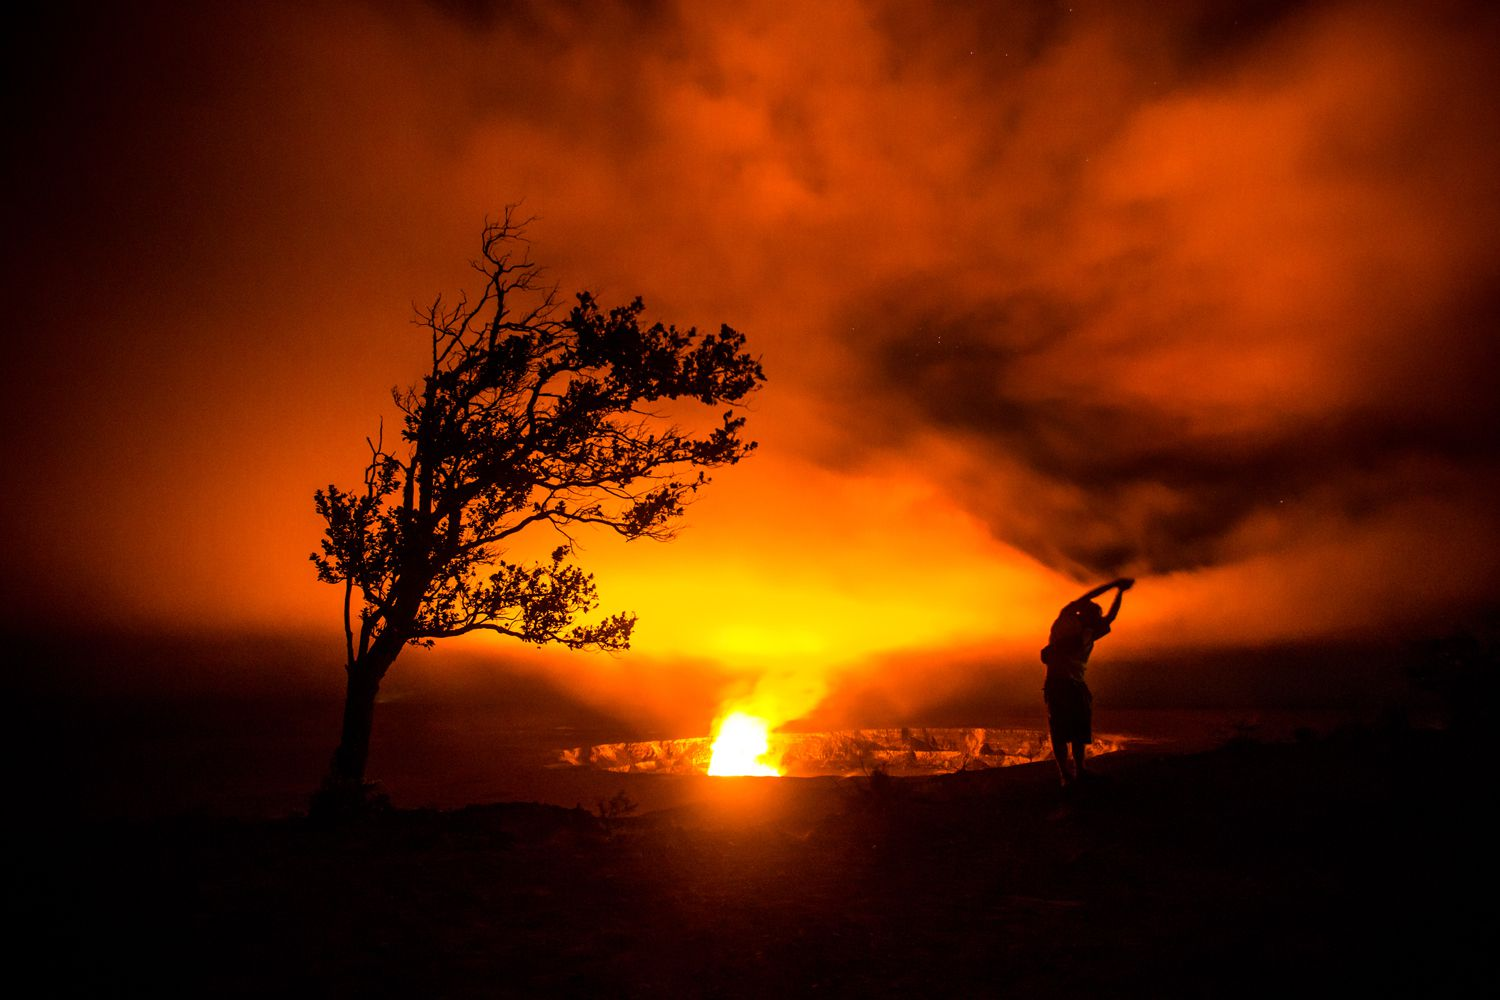 A person is silhouetted against the fires of a volcano